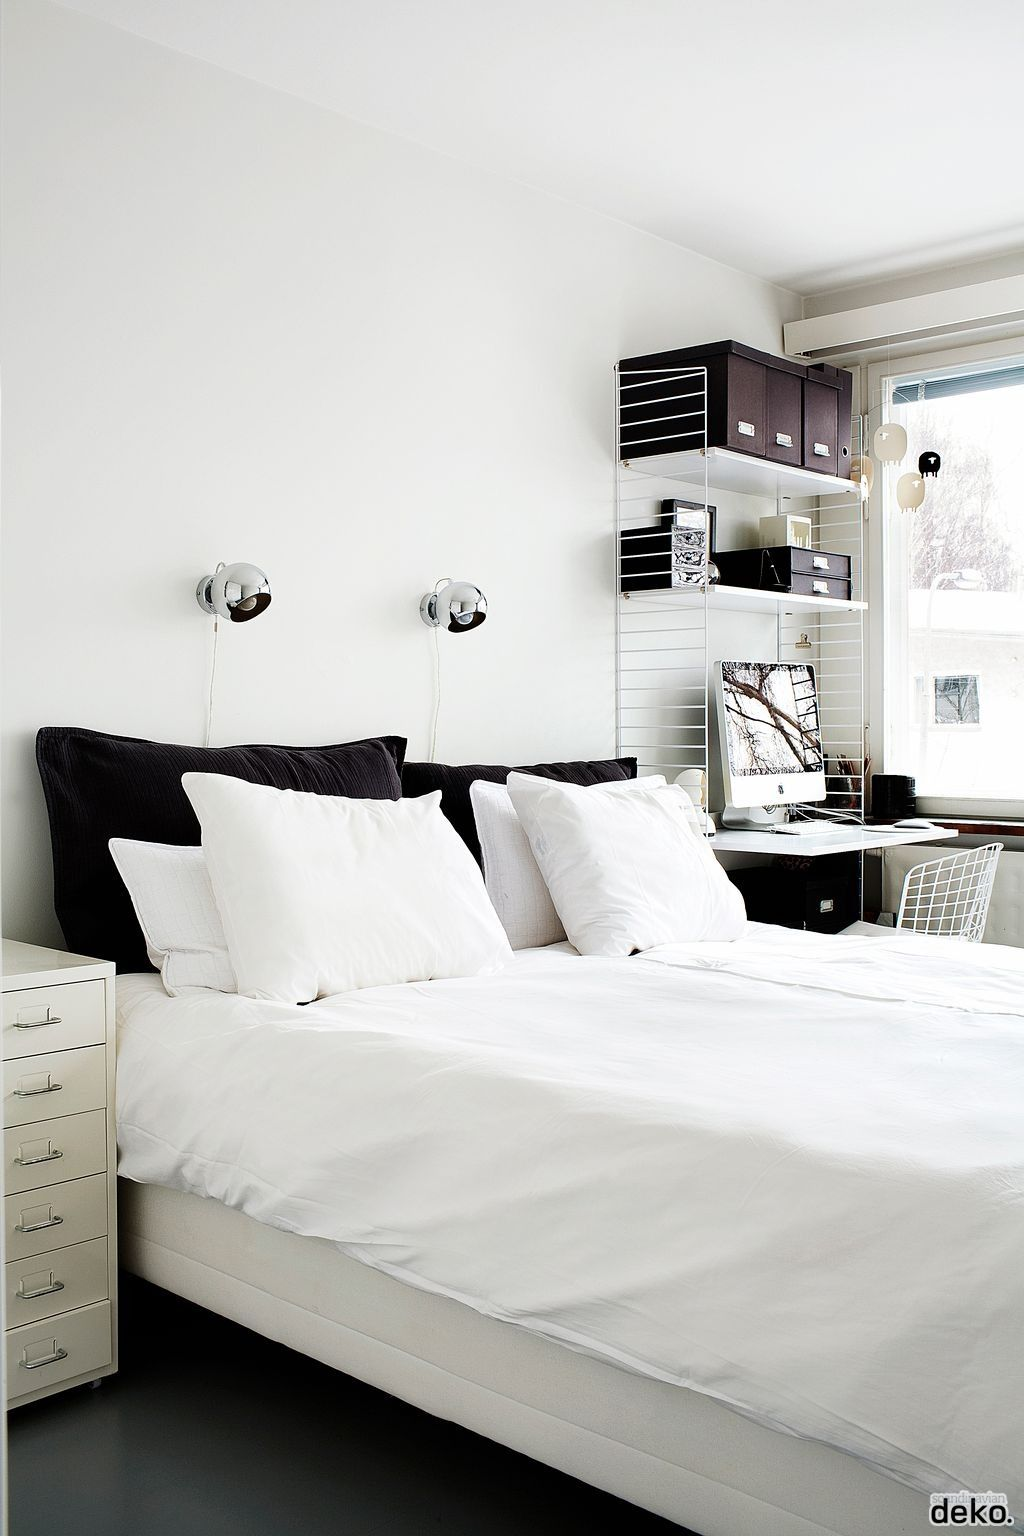 Ideas Scandinavian Deko Bedroom Interior Scandinavian Design Bedroom New Bedroom Design